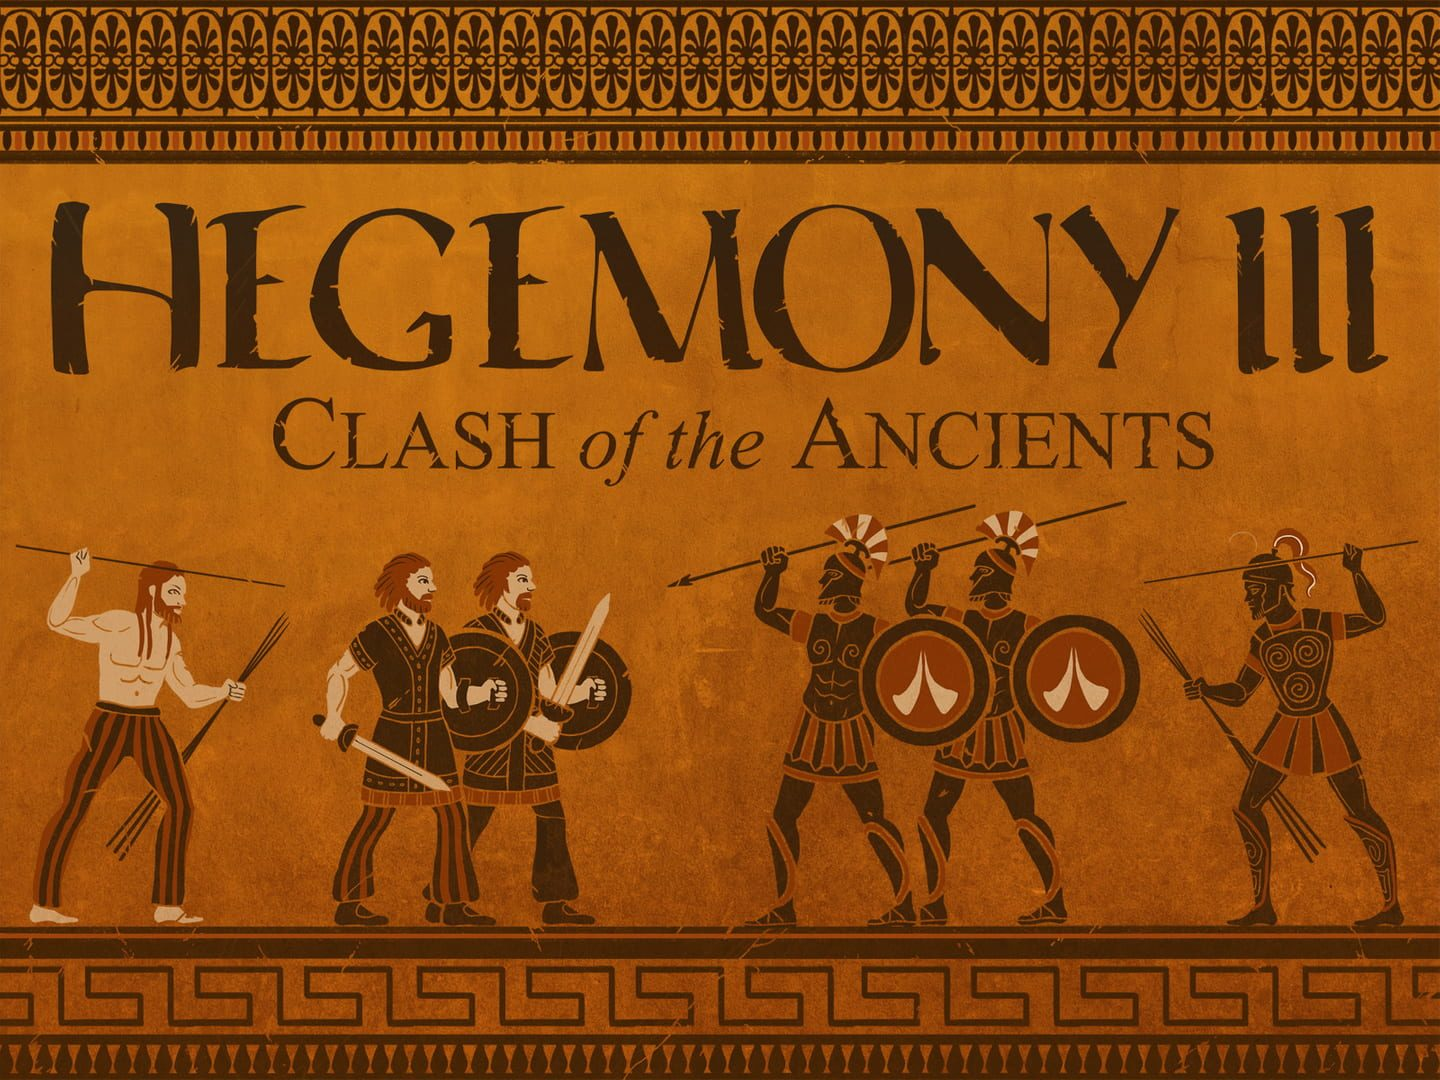 buy Hegemony III: Clash of the Ancients cd key for pc platform